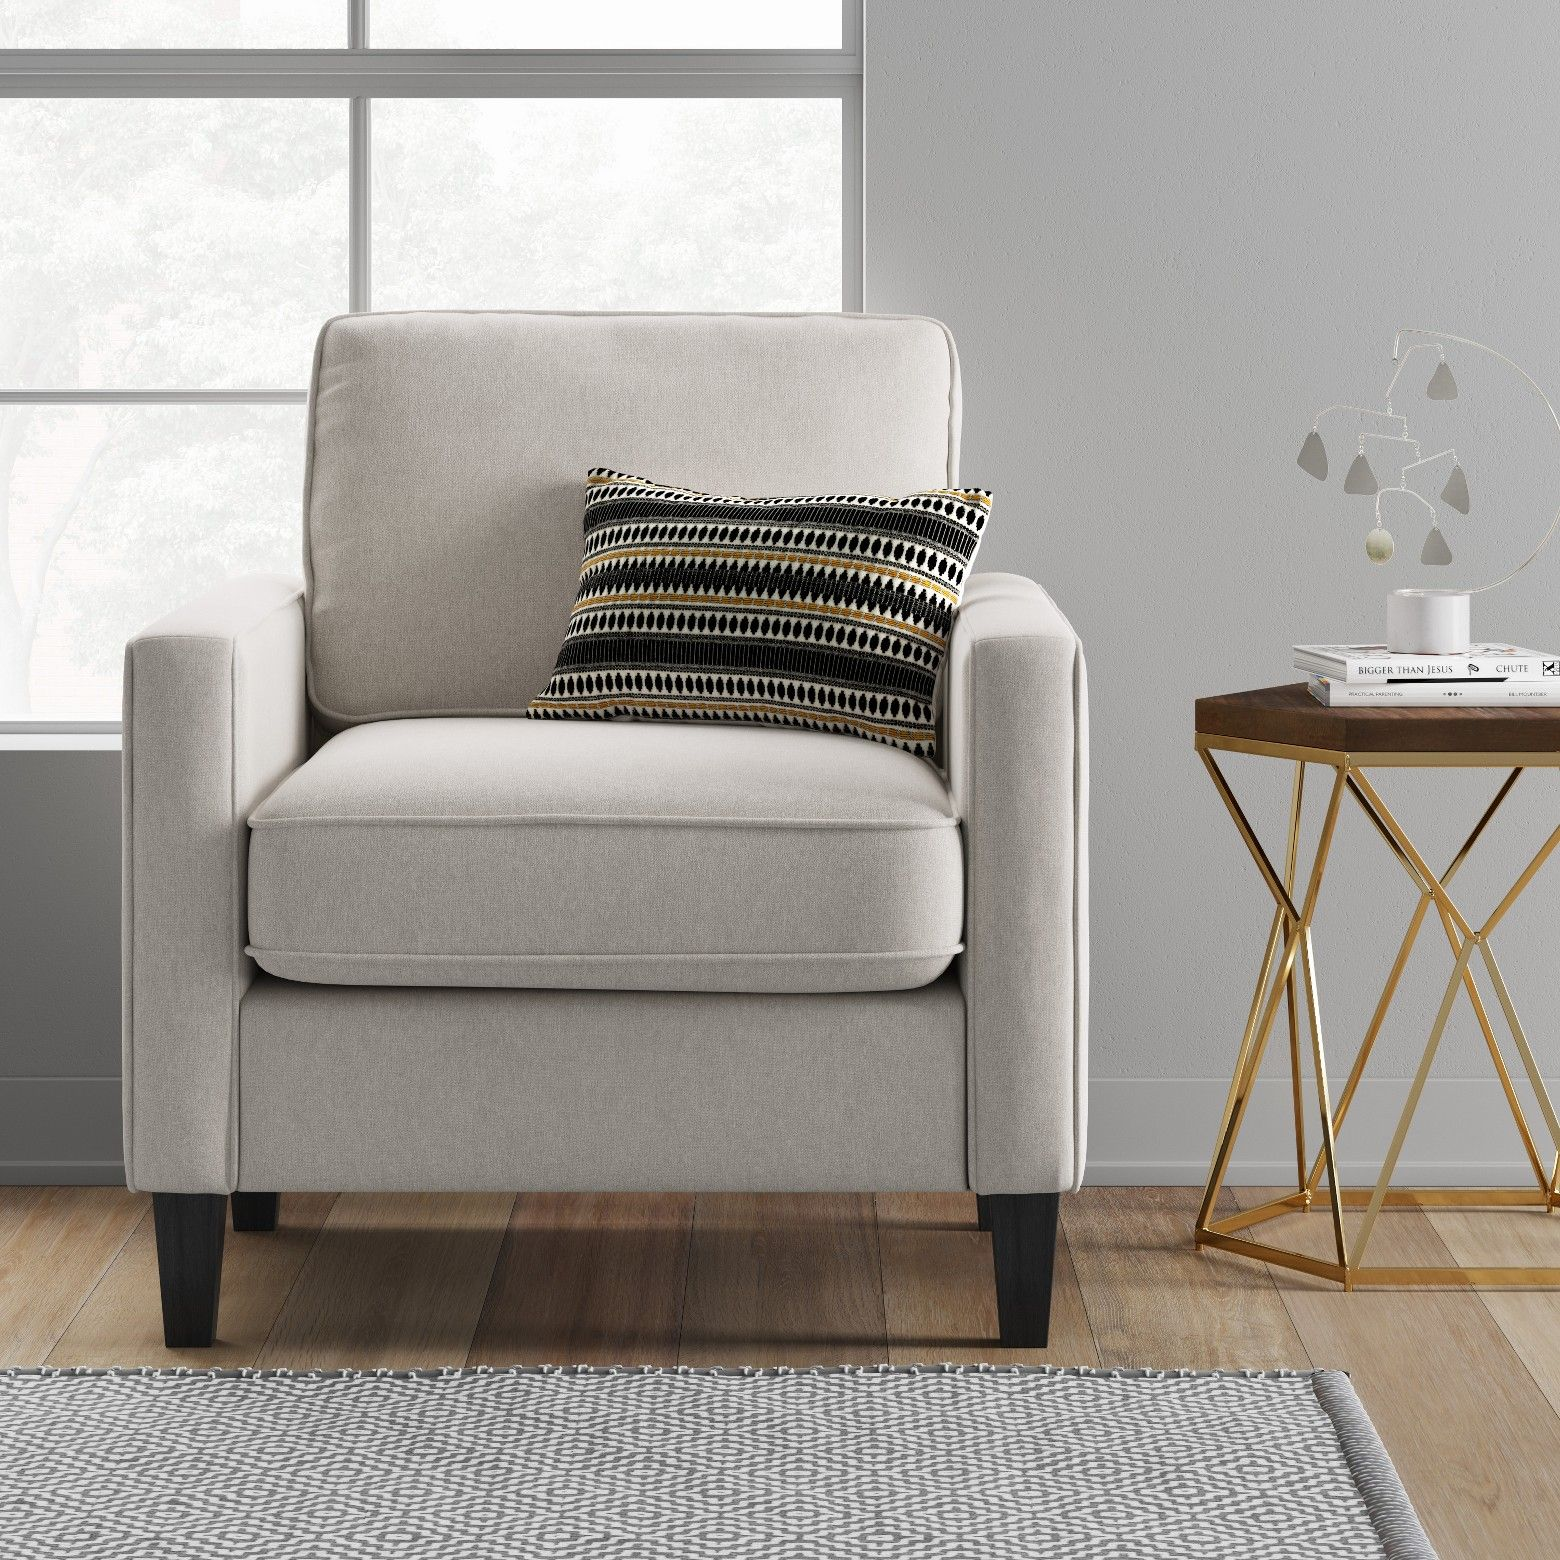 Furnish your space in style with this elmhurst modern loose back cushion beige chair from project 62 this modern armchair features clean lines and wood